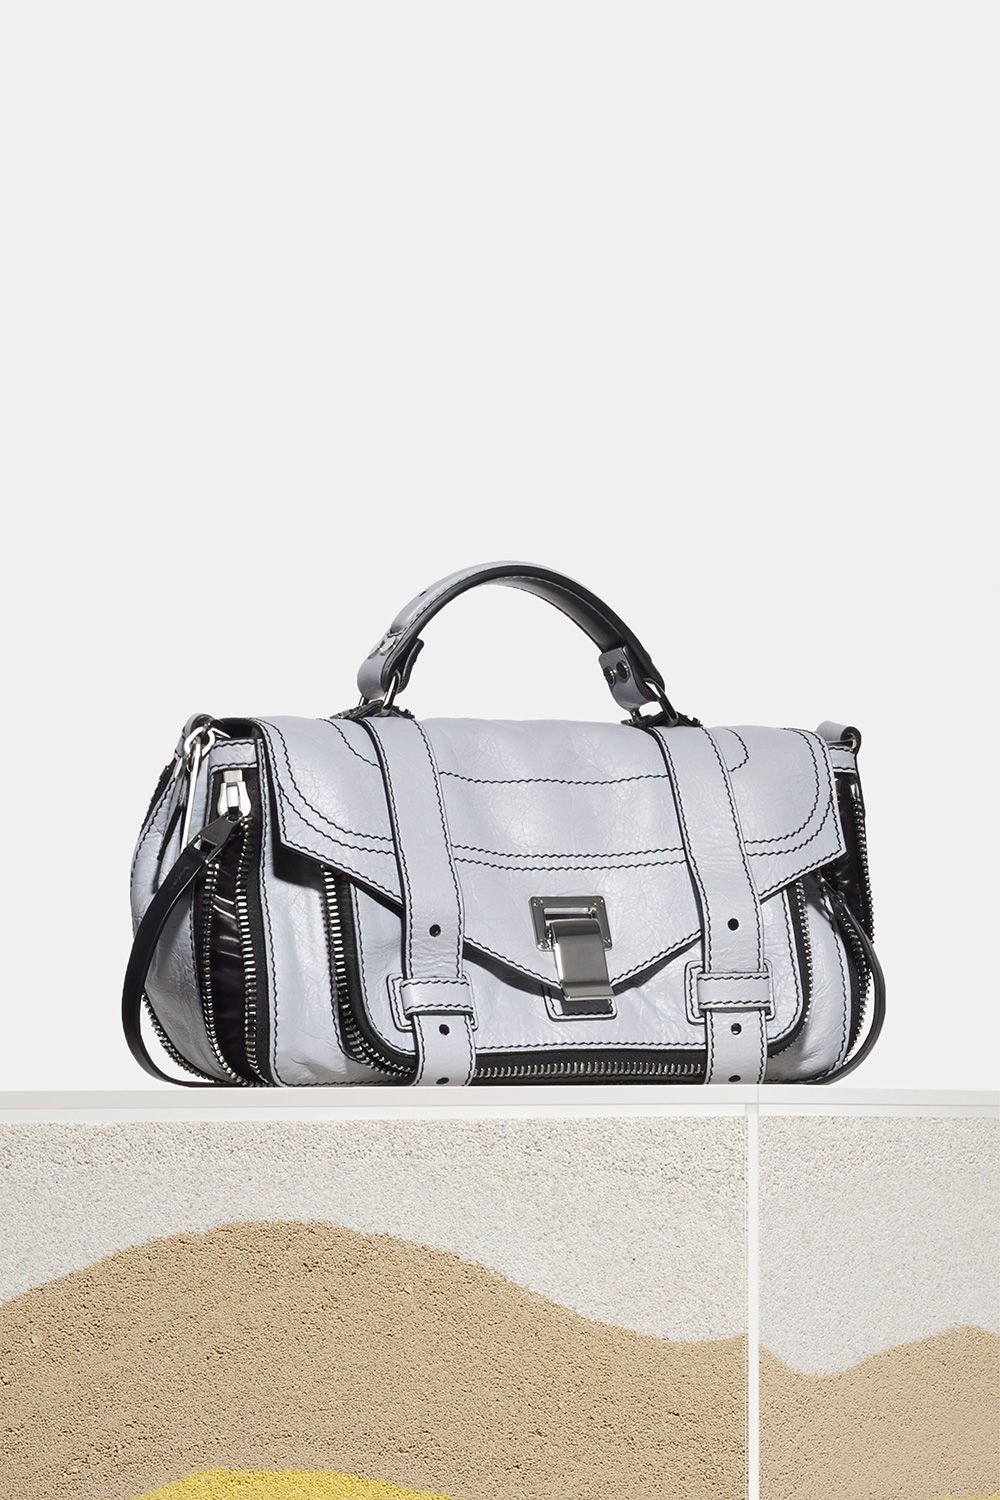 proenza schouler spring 2018 dove grey paper leather zip ps1+ tiny bag